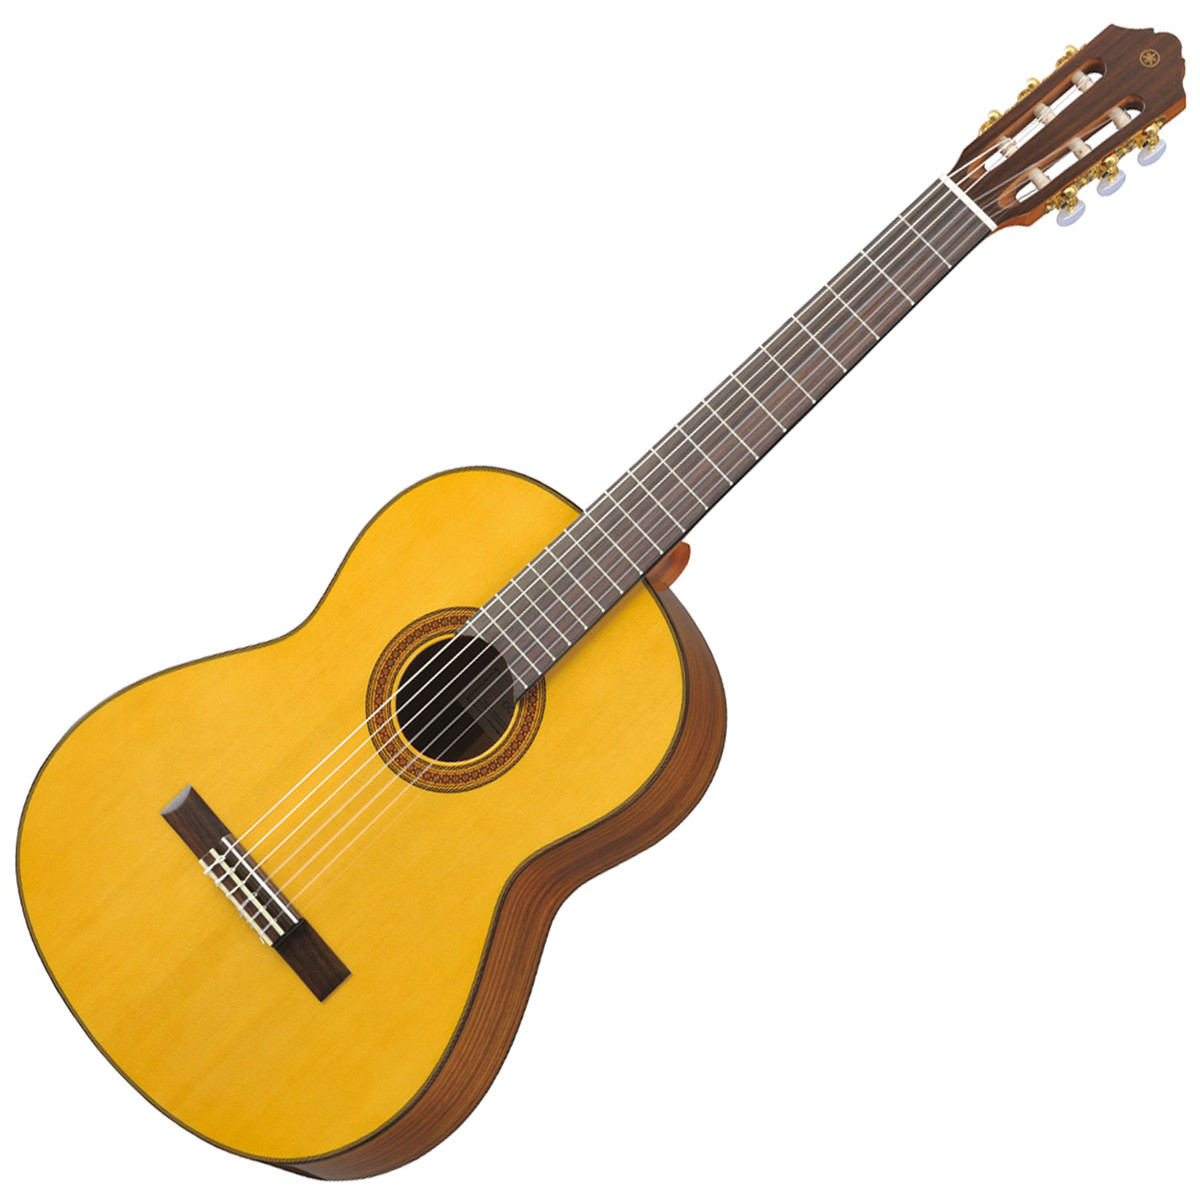 Yamaha cg162s classical acoustic guitar natural at for Yamaha classic guitar